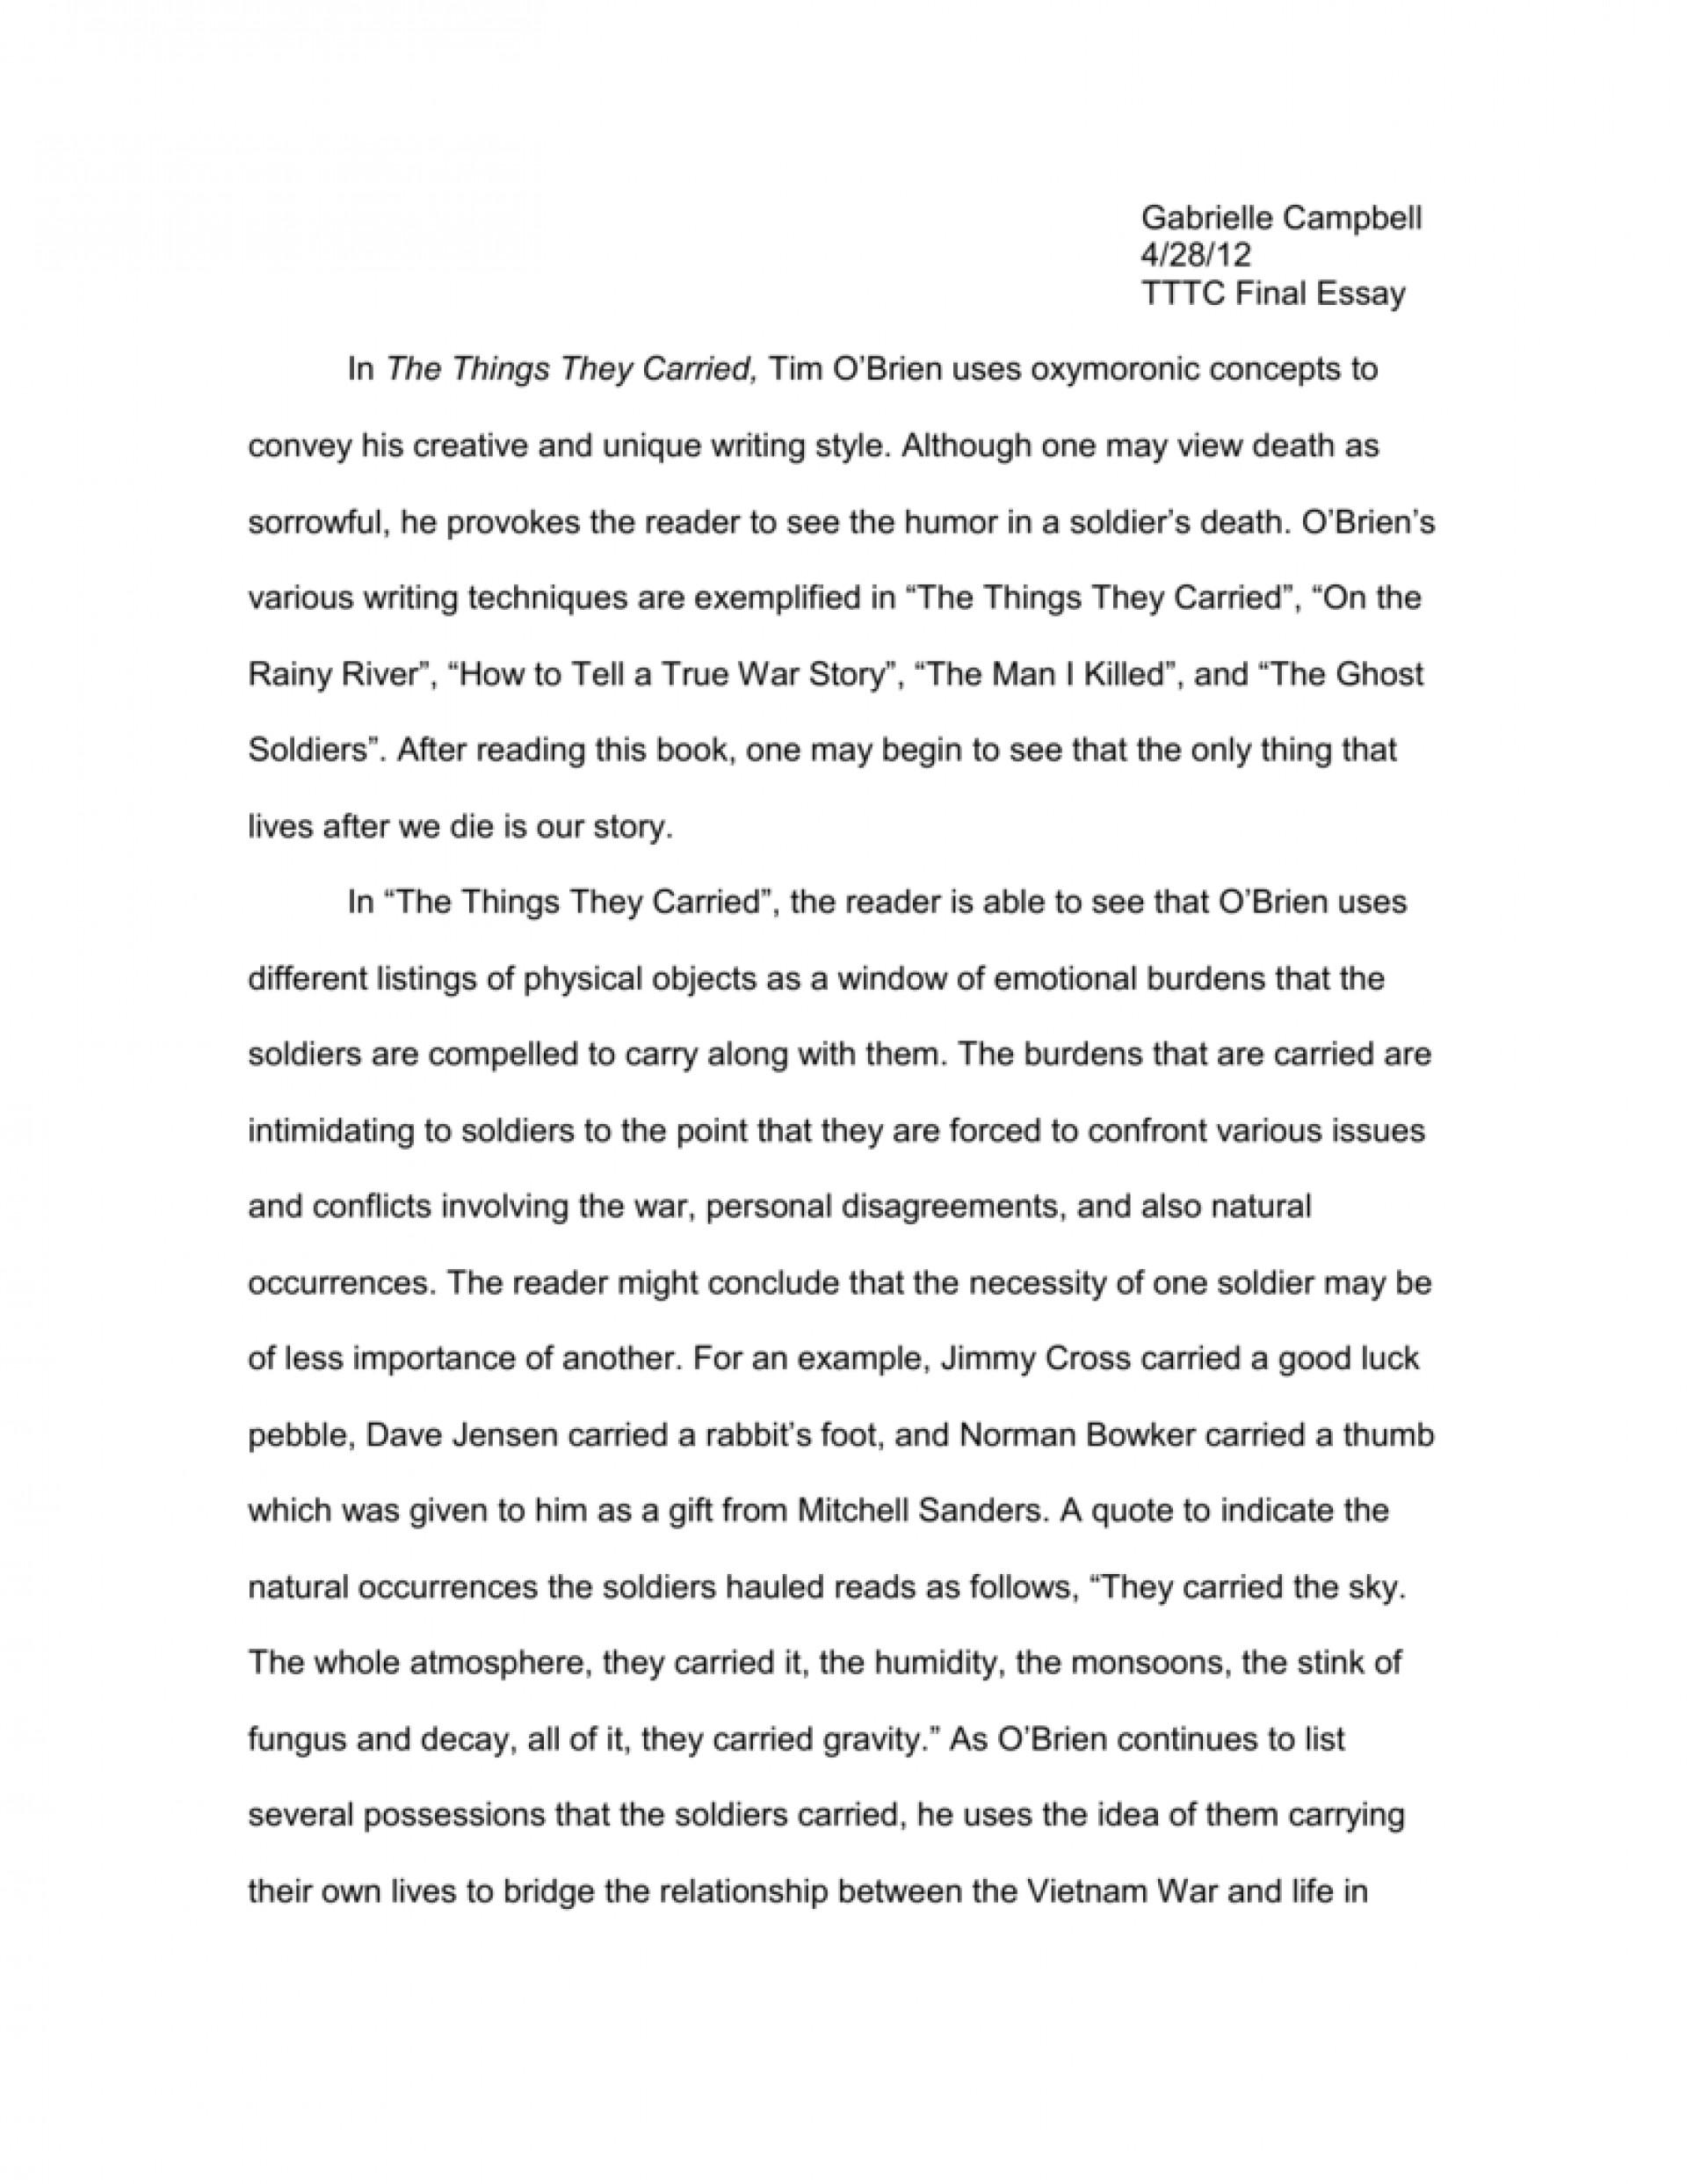 001 The Things They Carried Essay Example 008028277 1 Incredible Prompts Ideas 1920